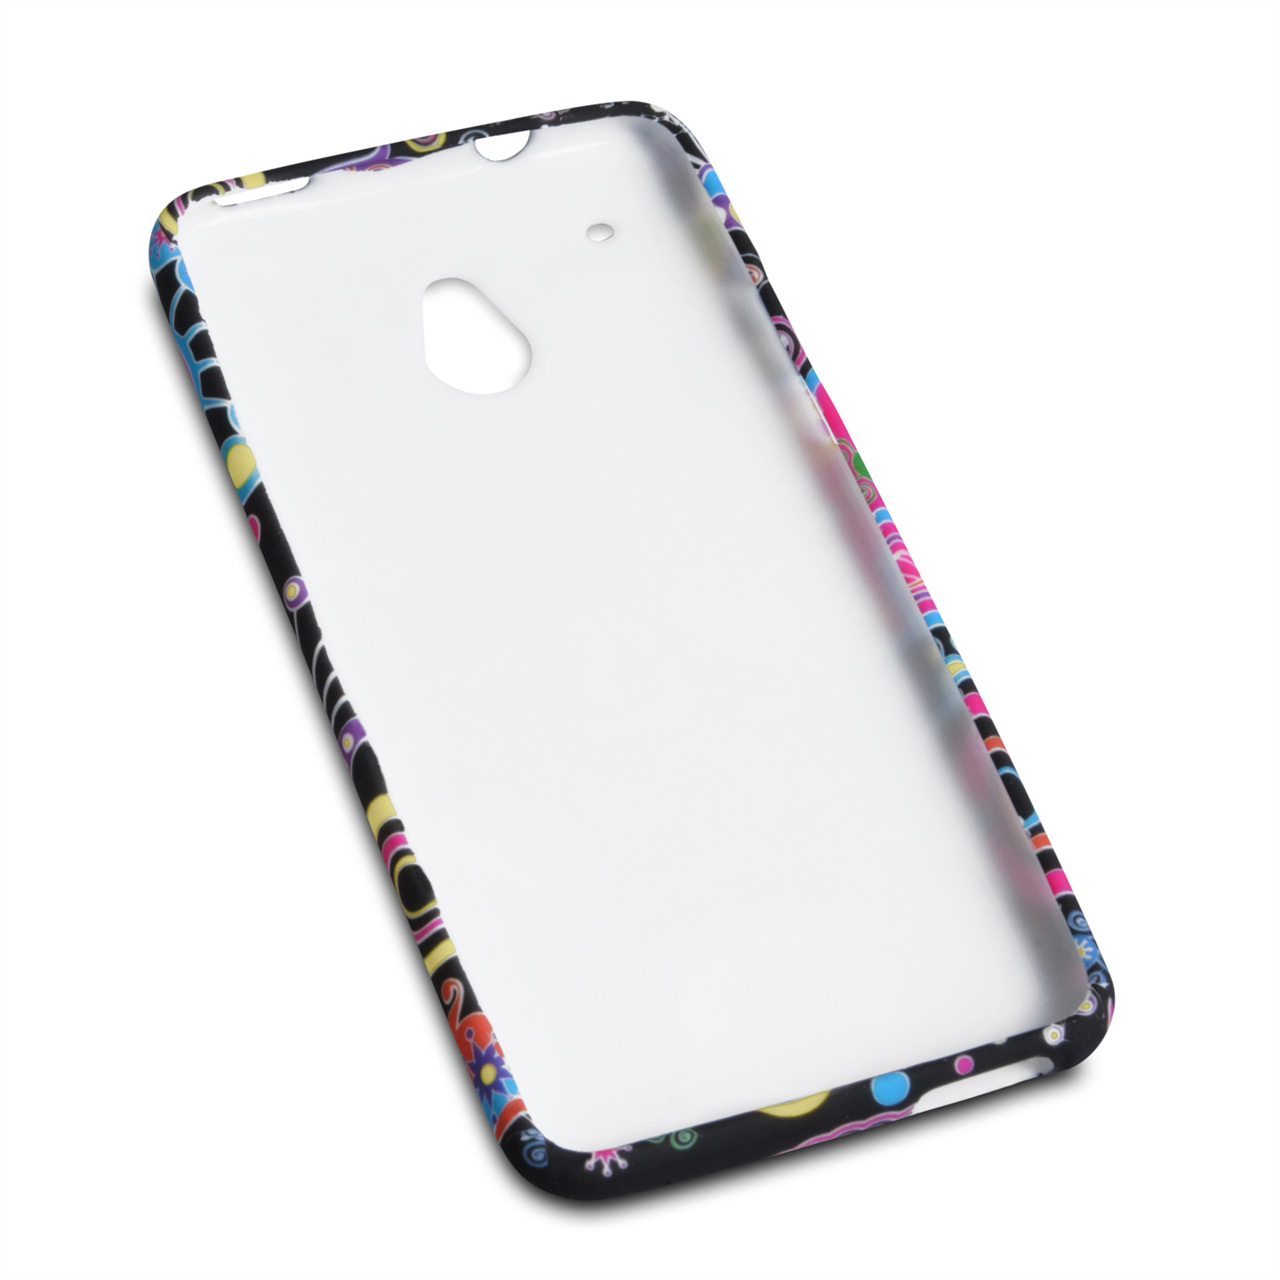 YouSave Accessories HTC ONE Mini Jellyfish Silicone Gel Case